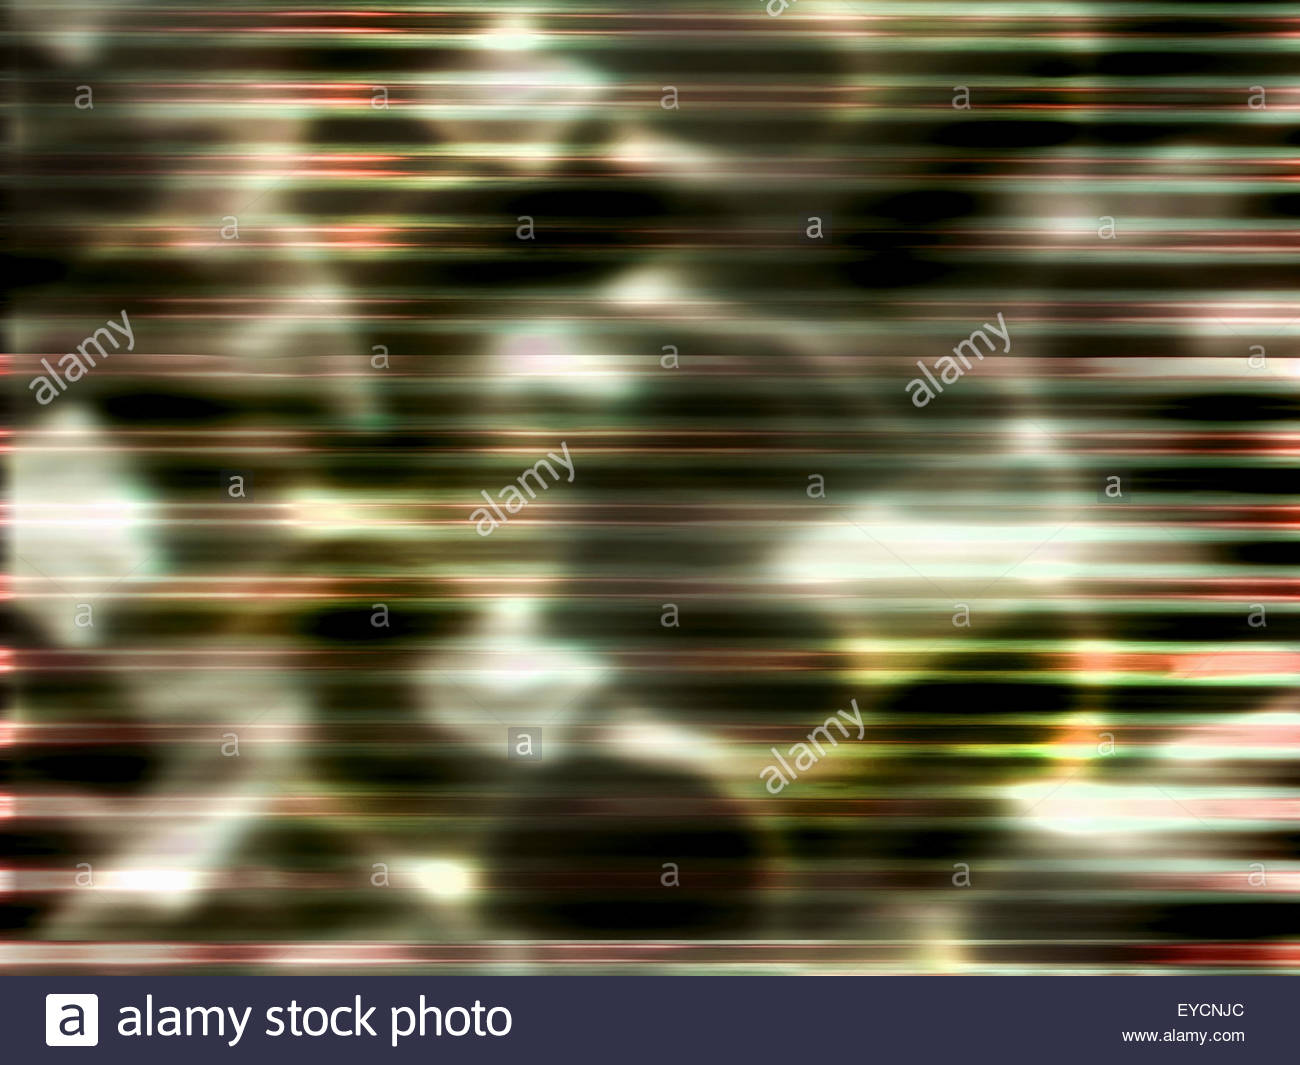 Blurred motion abstract background stripe pattern - Stock Image